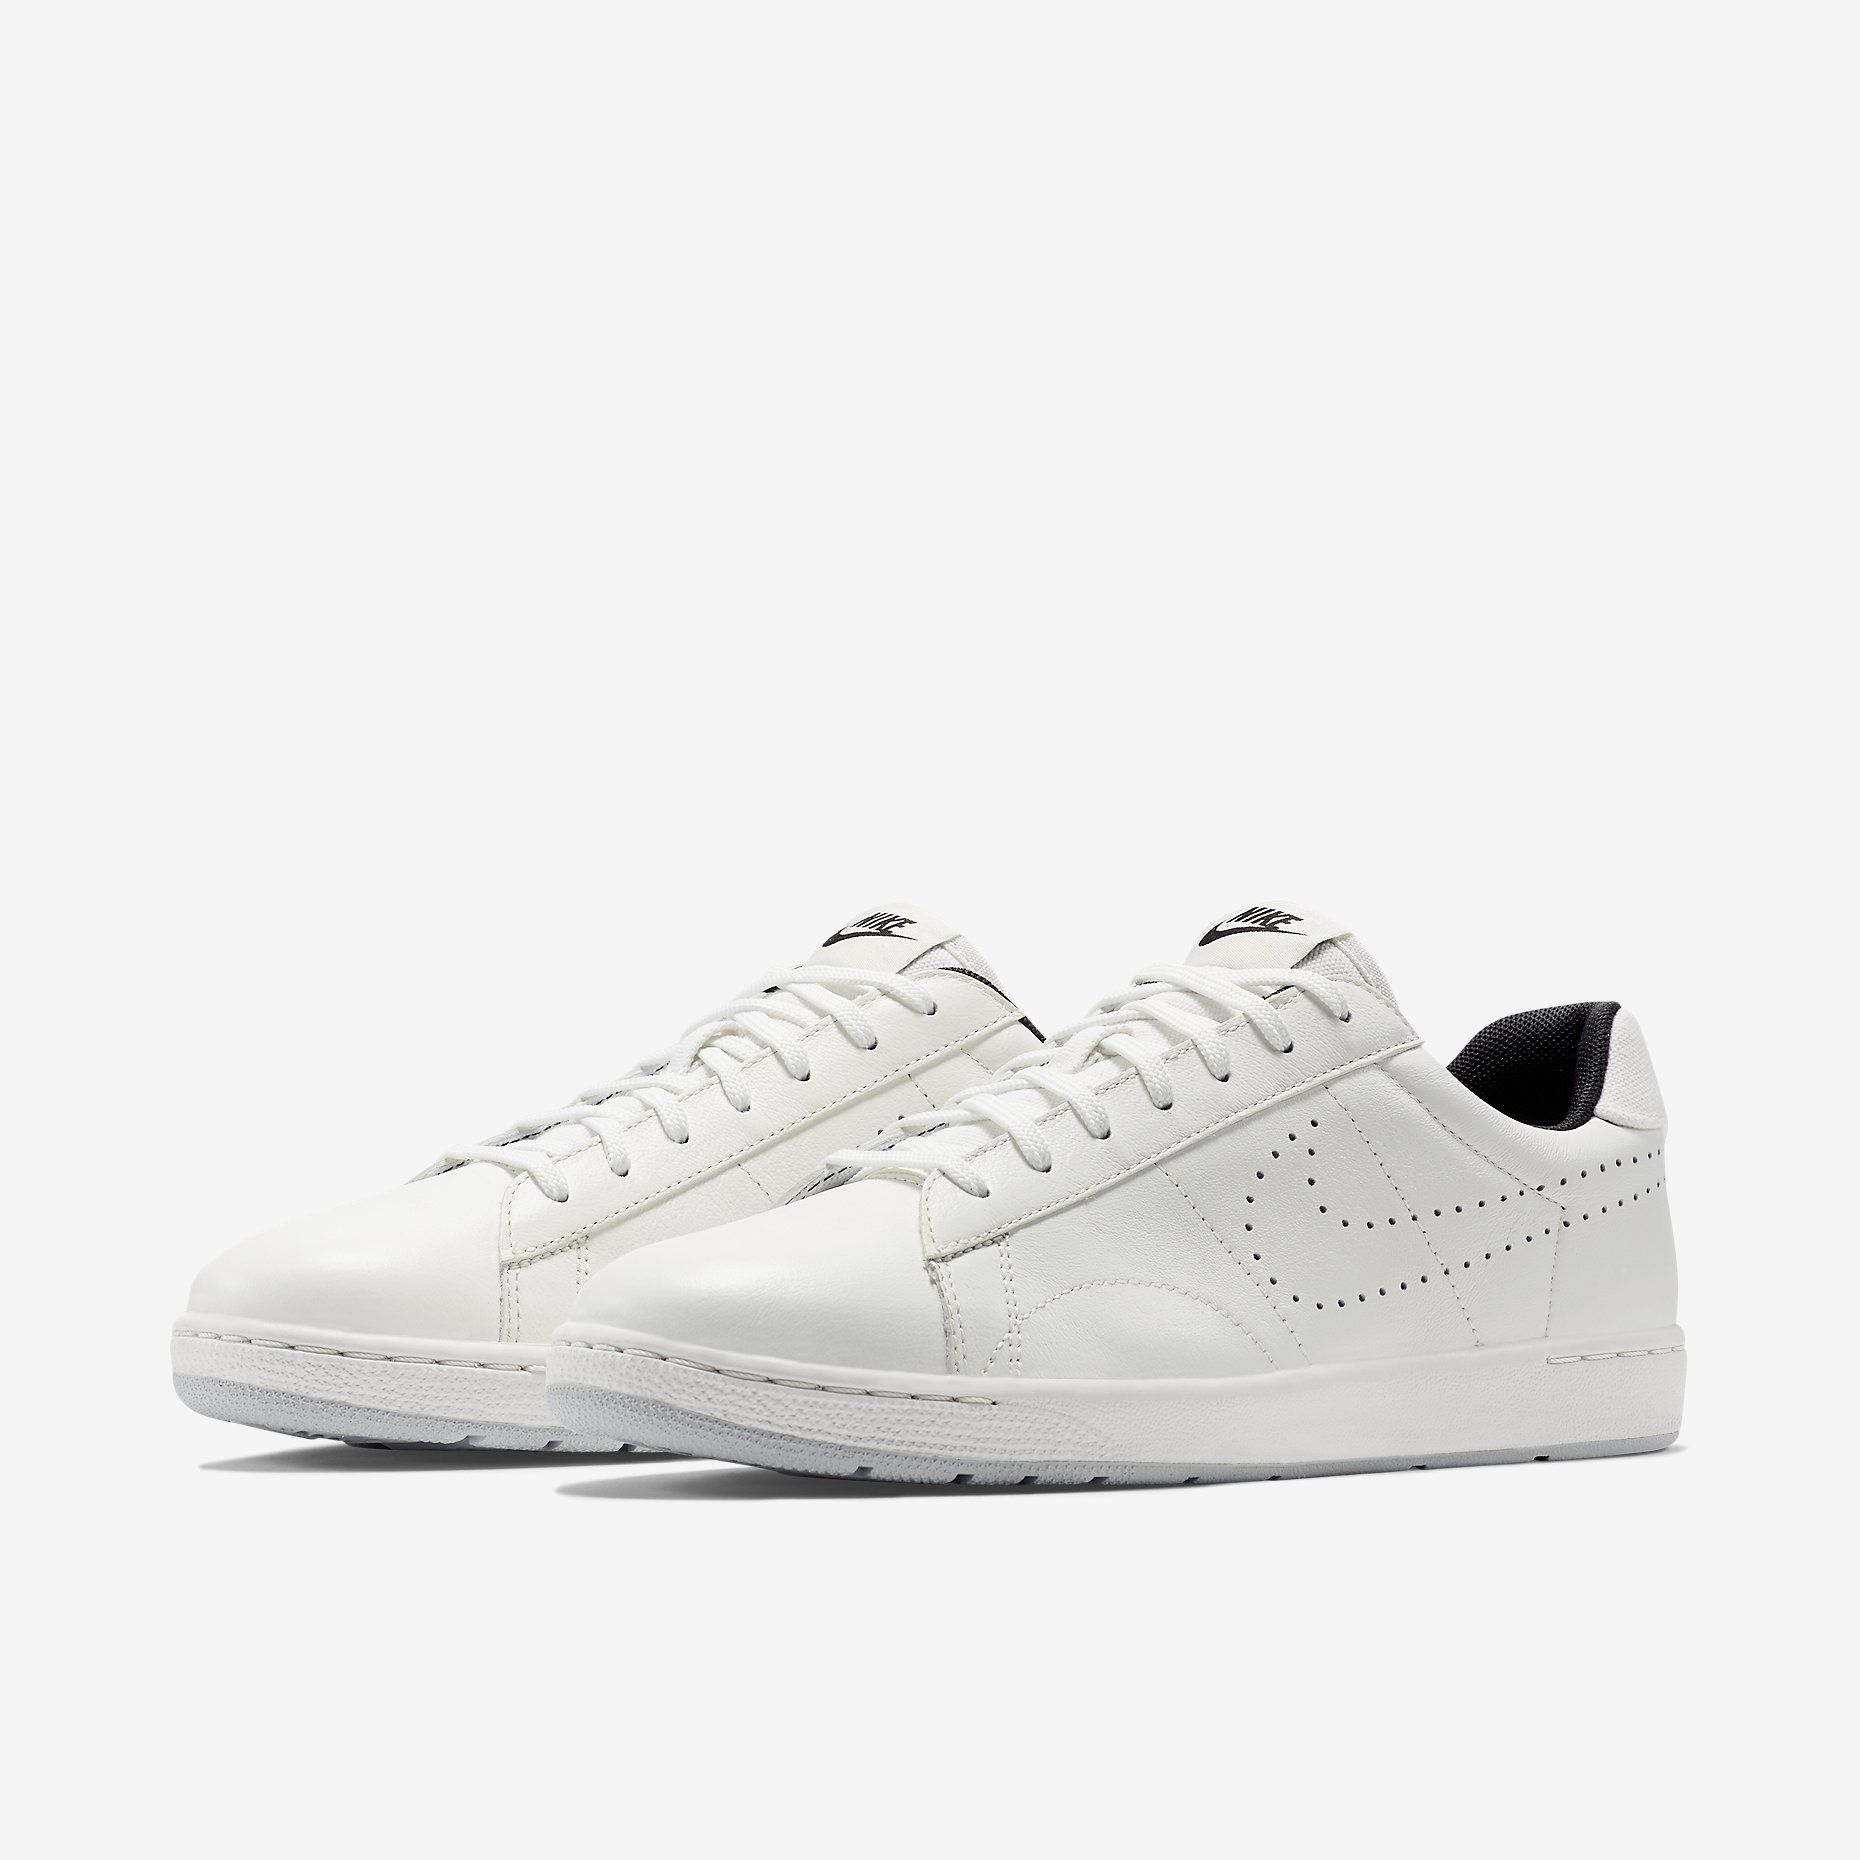 Nike Tennis The Fifth Watches classic / Minimal meets classic Watches cff204